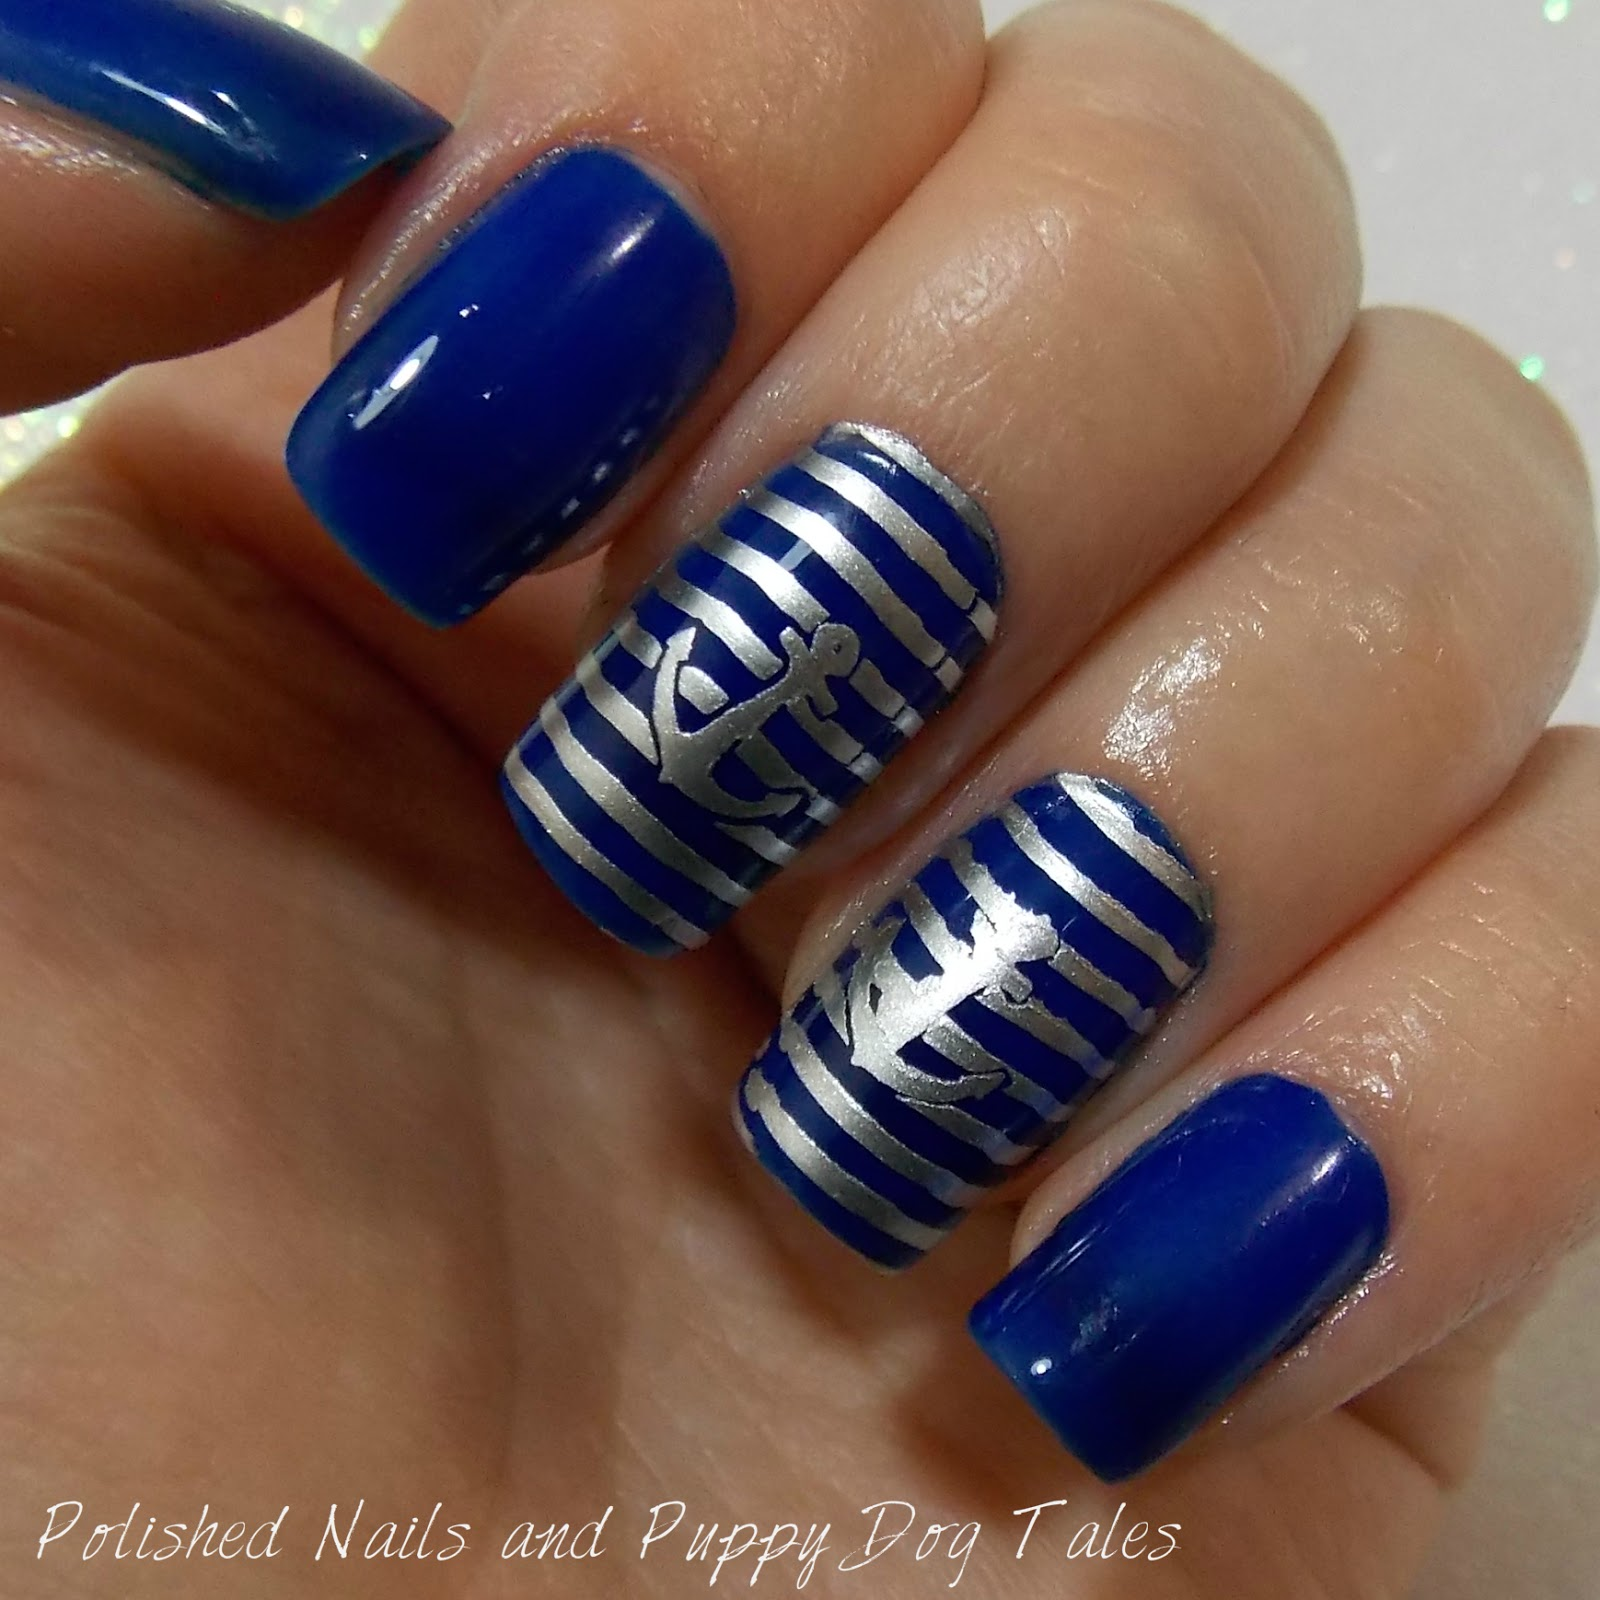 Polished Nails And Puppy Dog Tales 26 Great Nail Art Ideas Blue